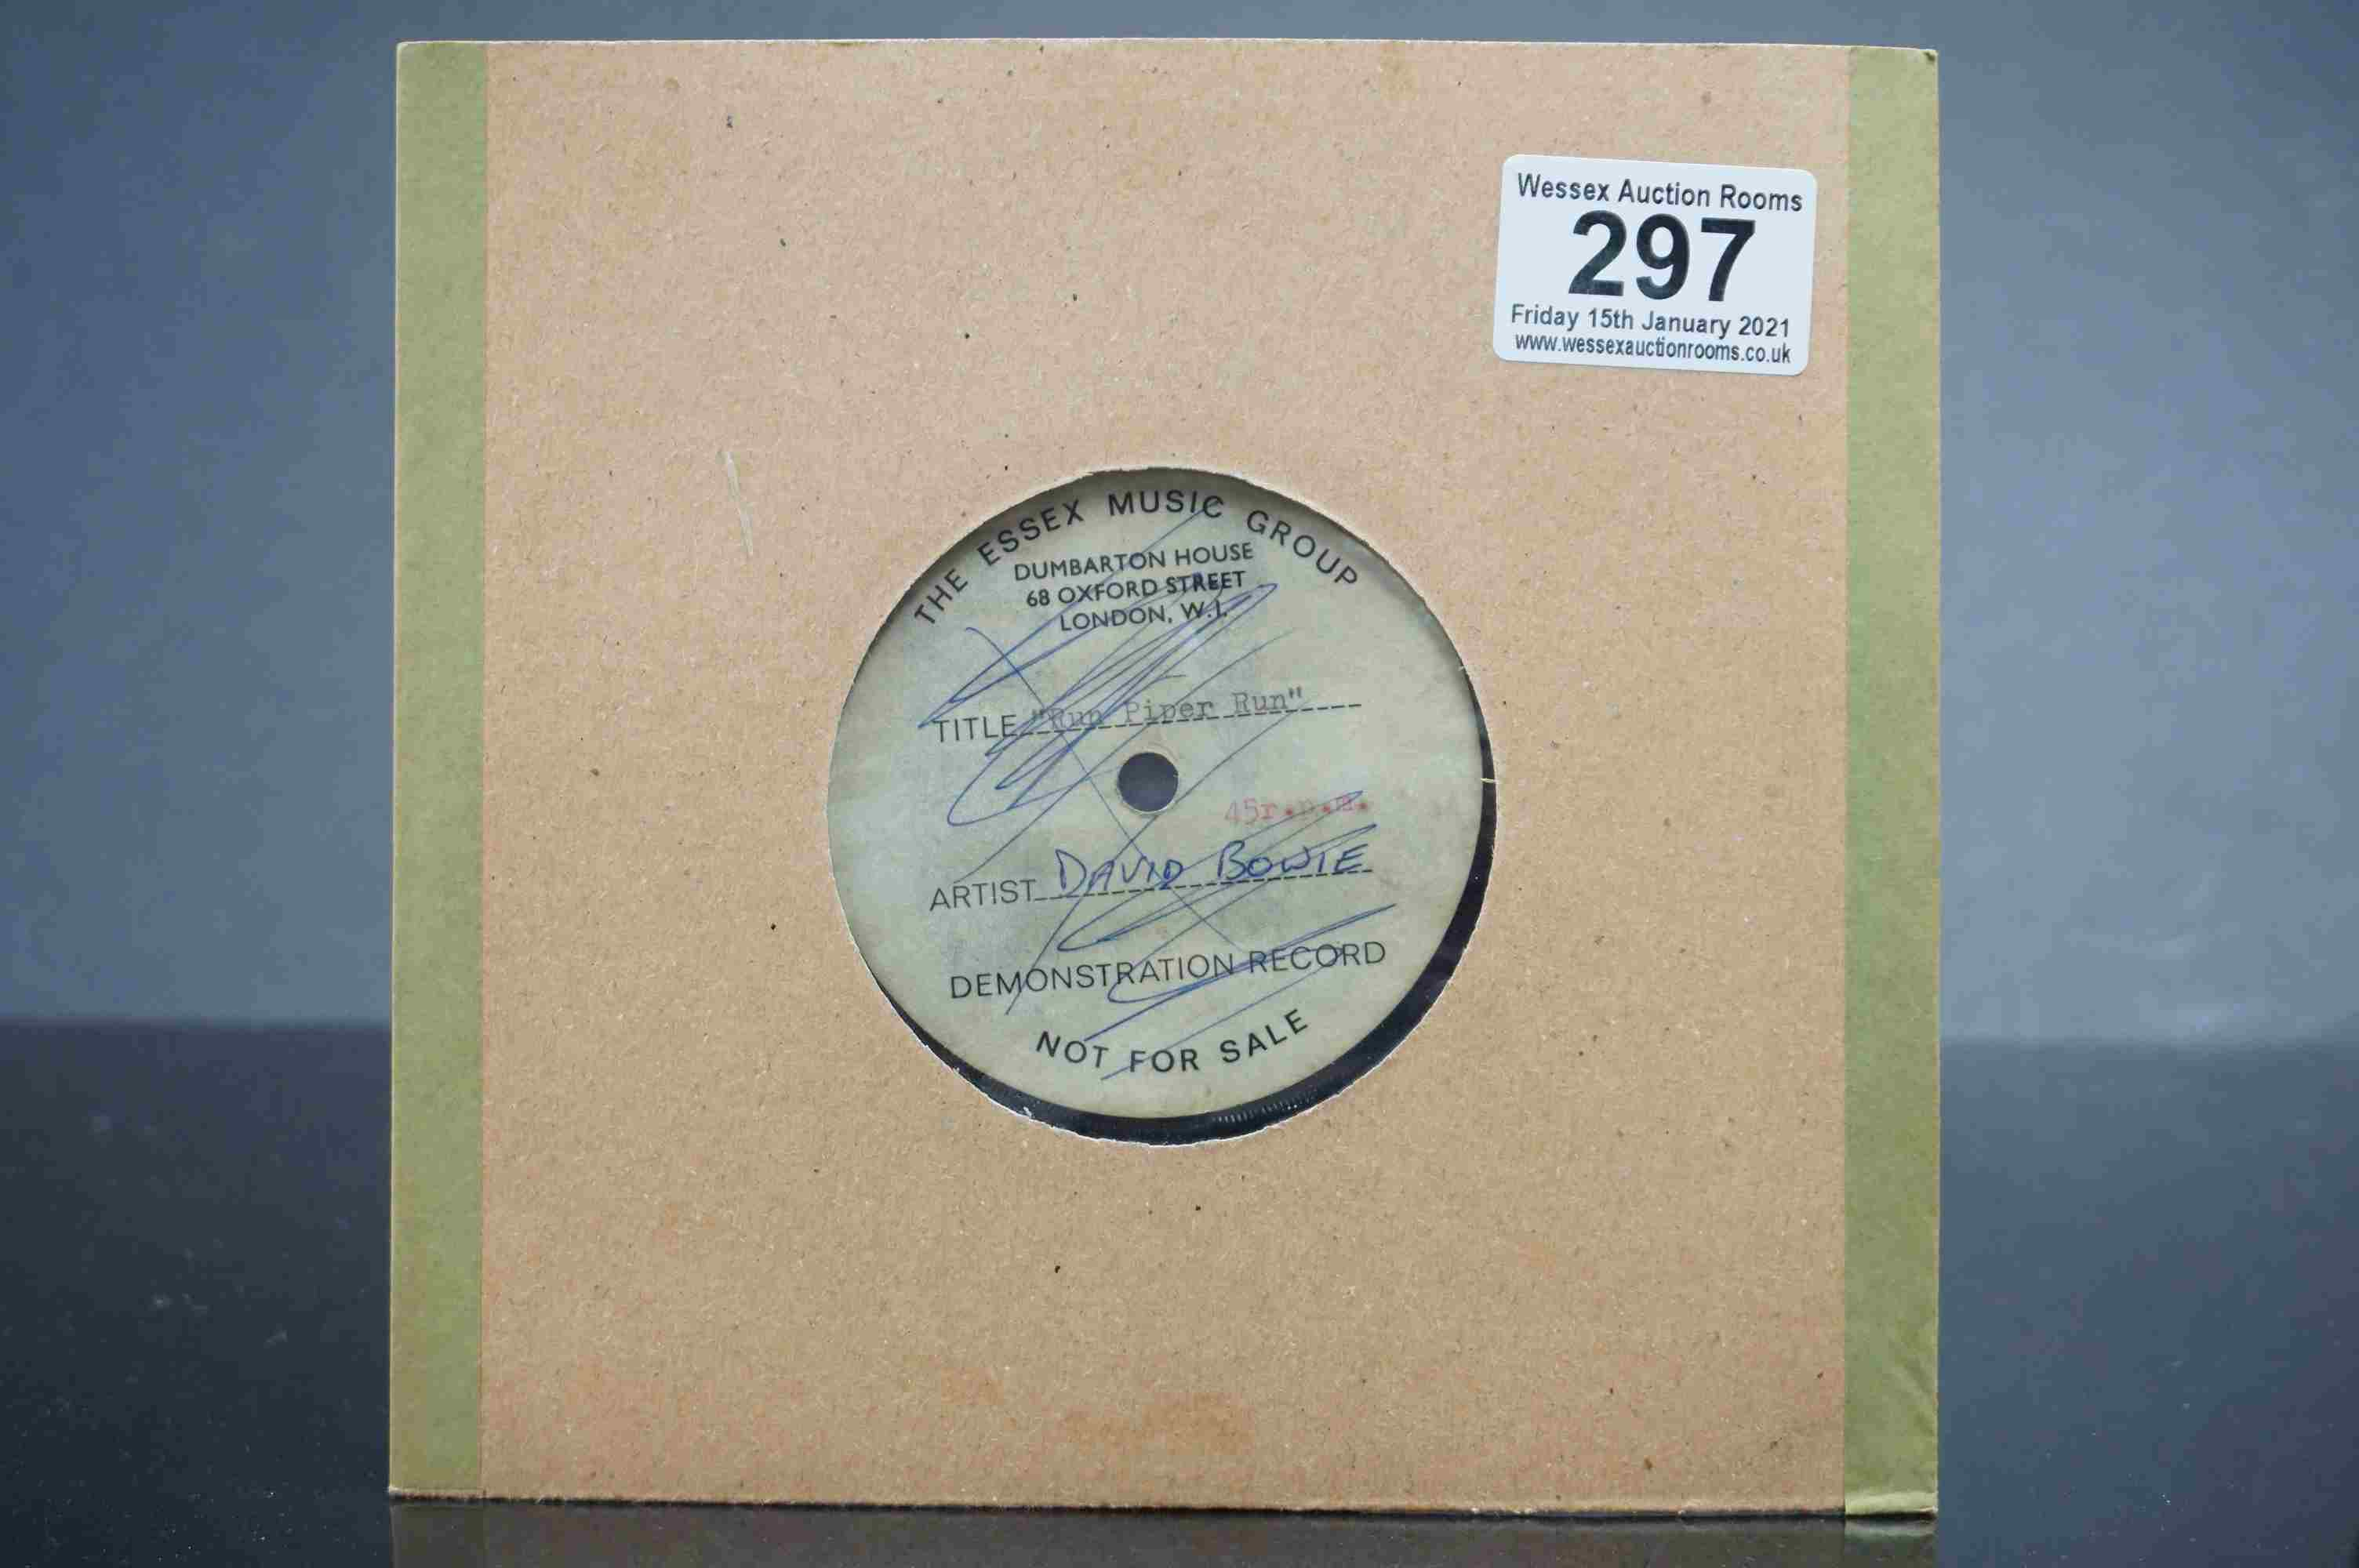 Vinyl - David Bowie / Ace Kefford - A two sided acetate featuring a previously unknown & unheard - Image 9 of 9